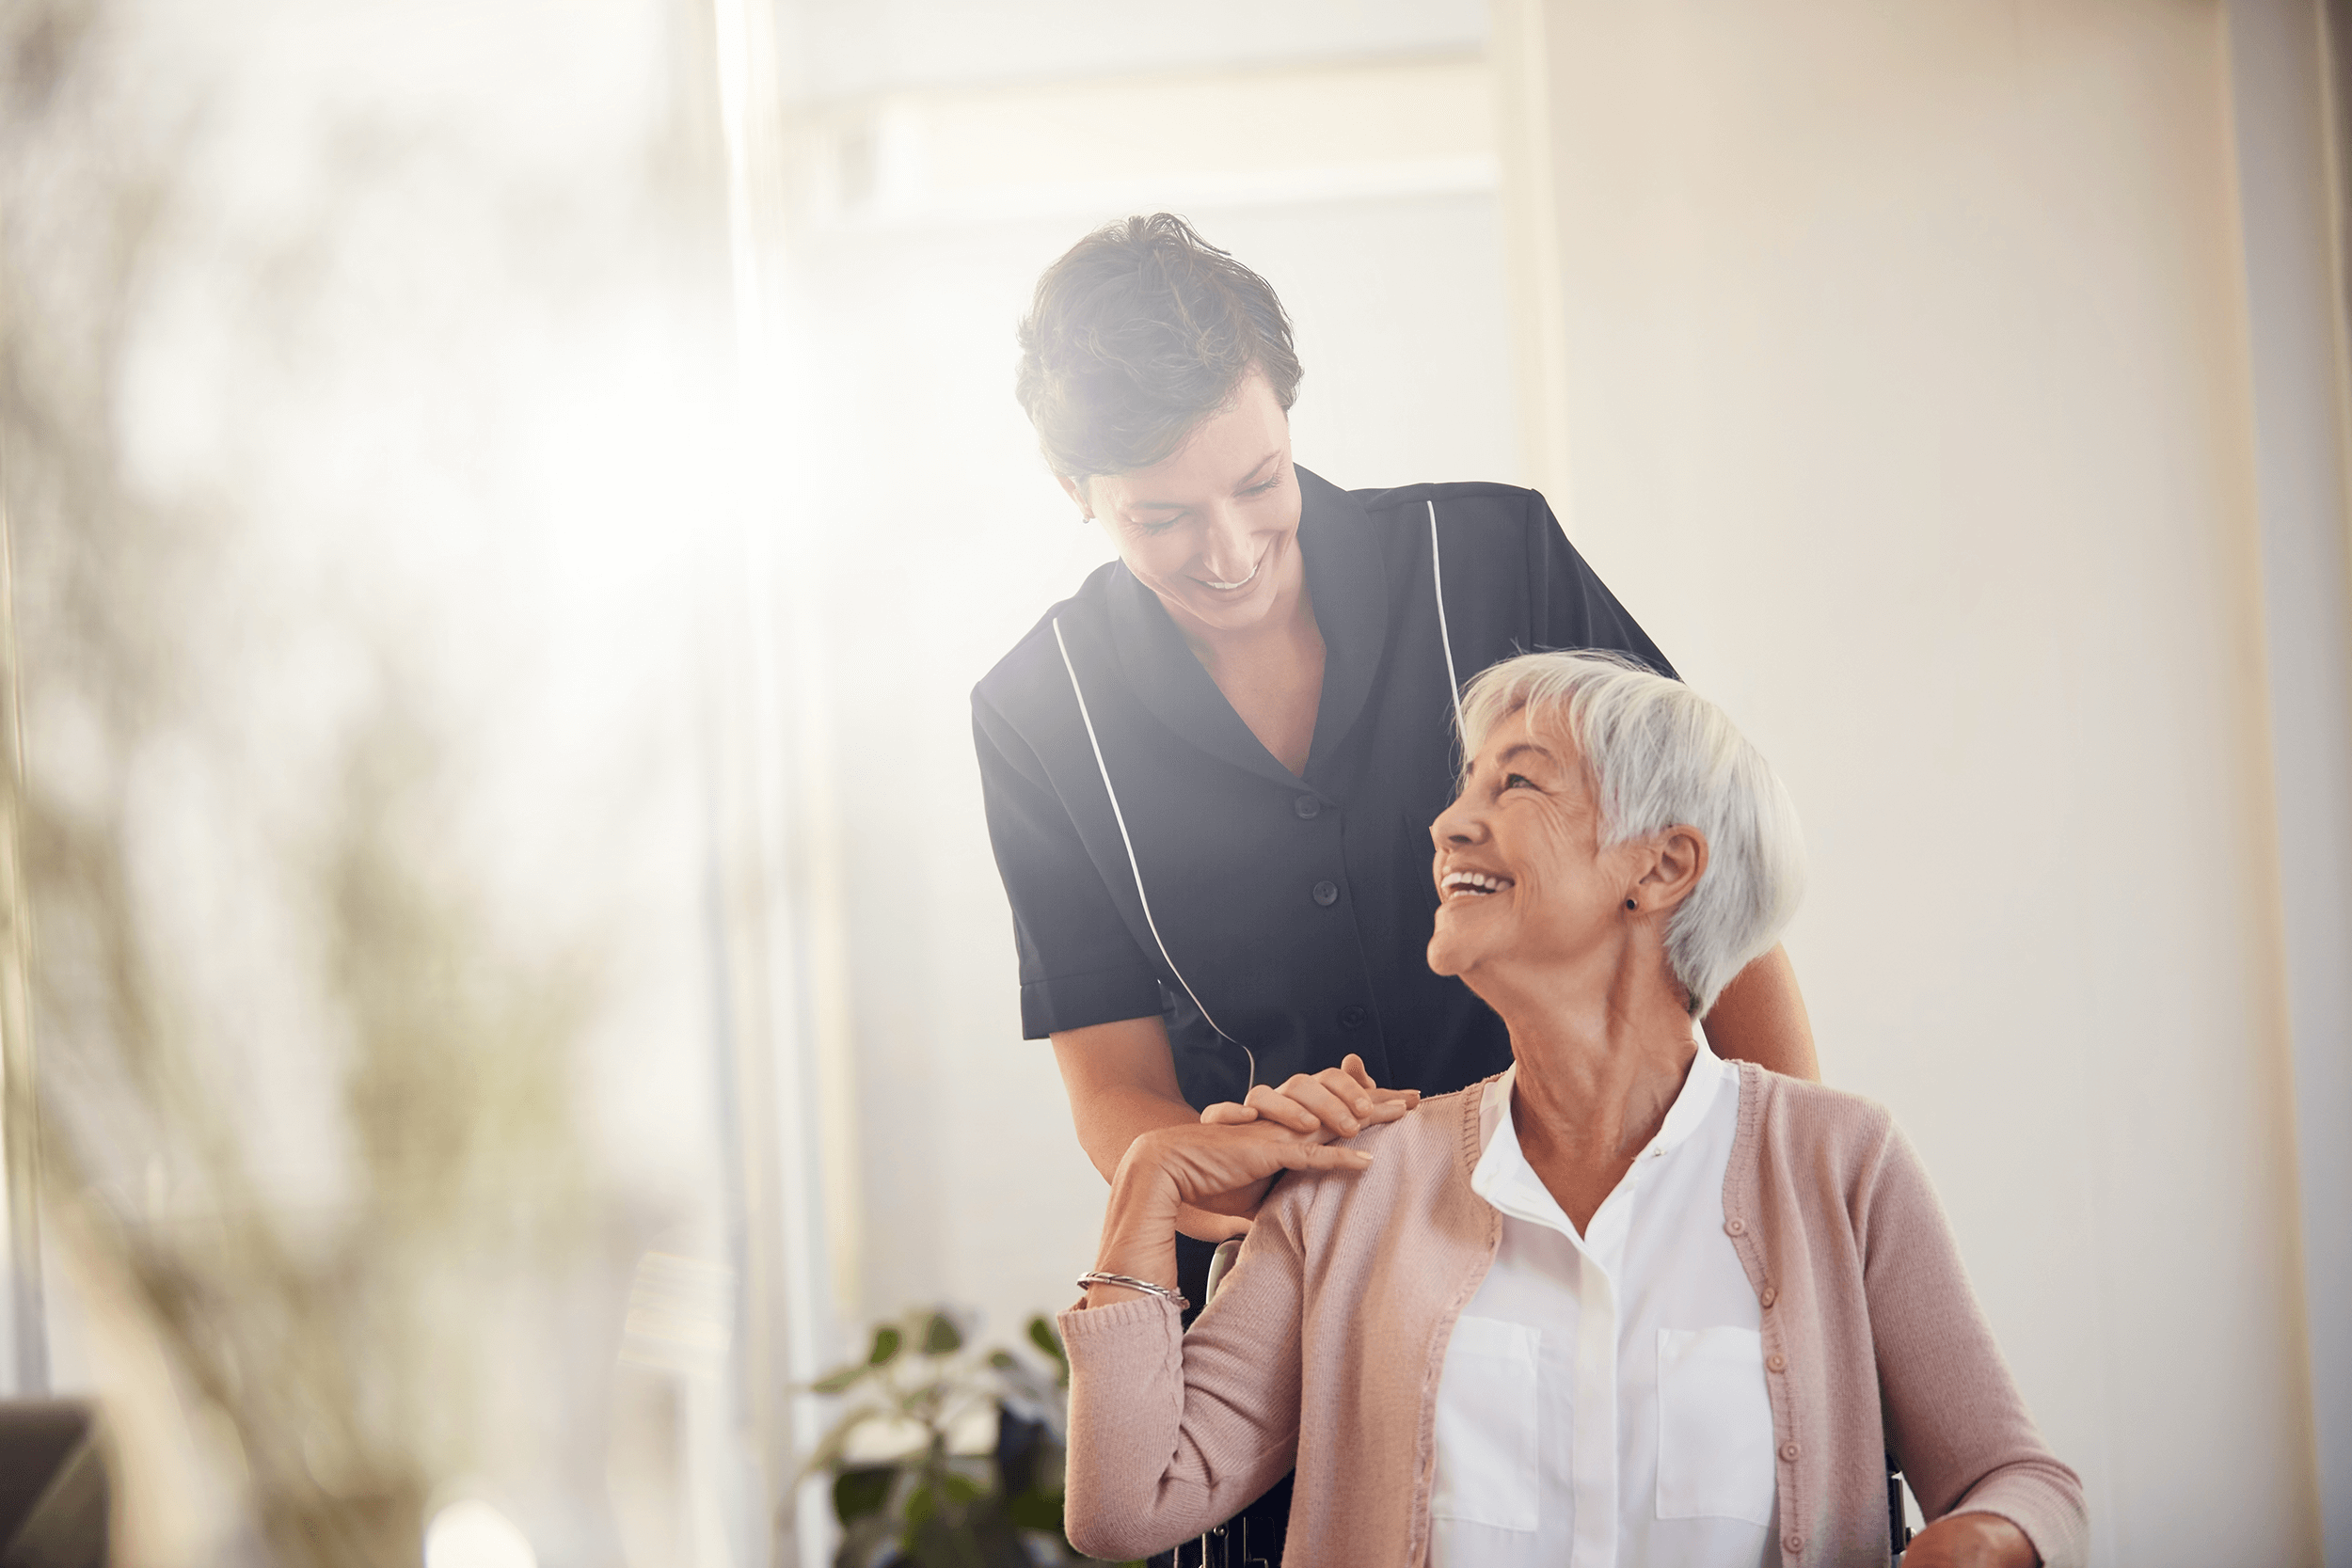 Webinar: Improving the Home Care Employee Experience